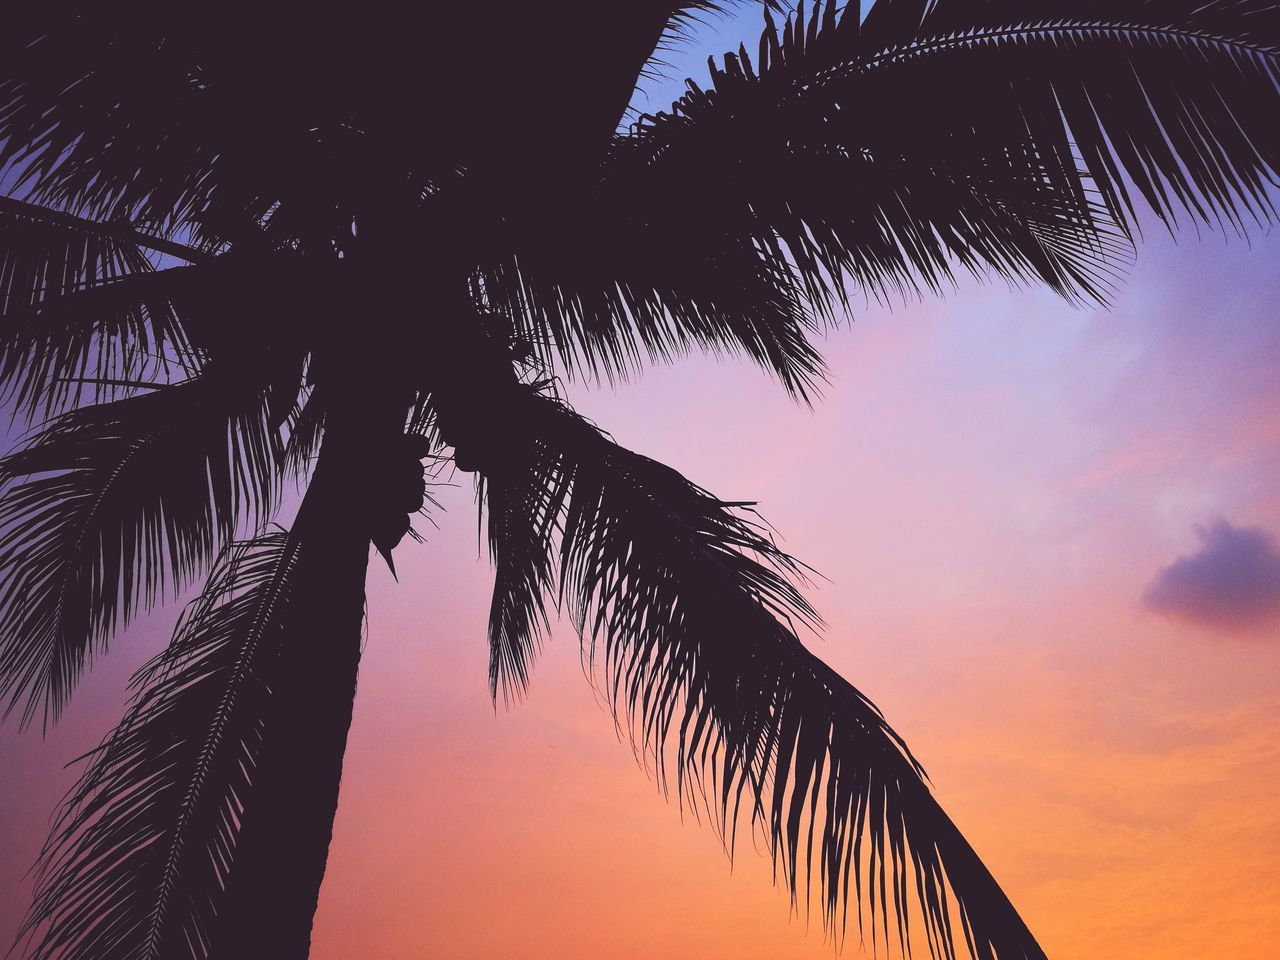 Give up,to grow up🌸 Sunset Lovers Sunset Photography Sky Lover Colourful Sky Shadow Of Coconut Leaves Coconut Tree Beauty On Nature Sunset Silhouette Tree No People Low Angle View Sky Outdoors Day